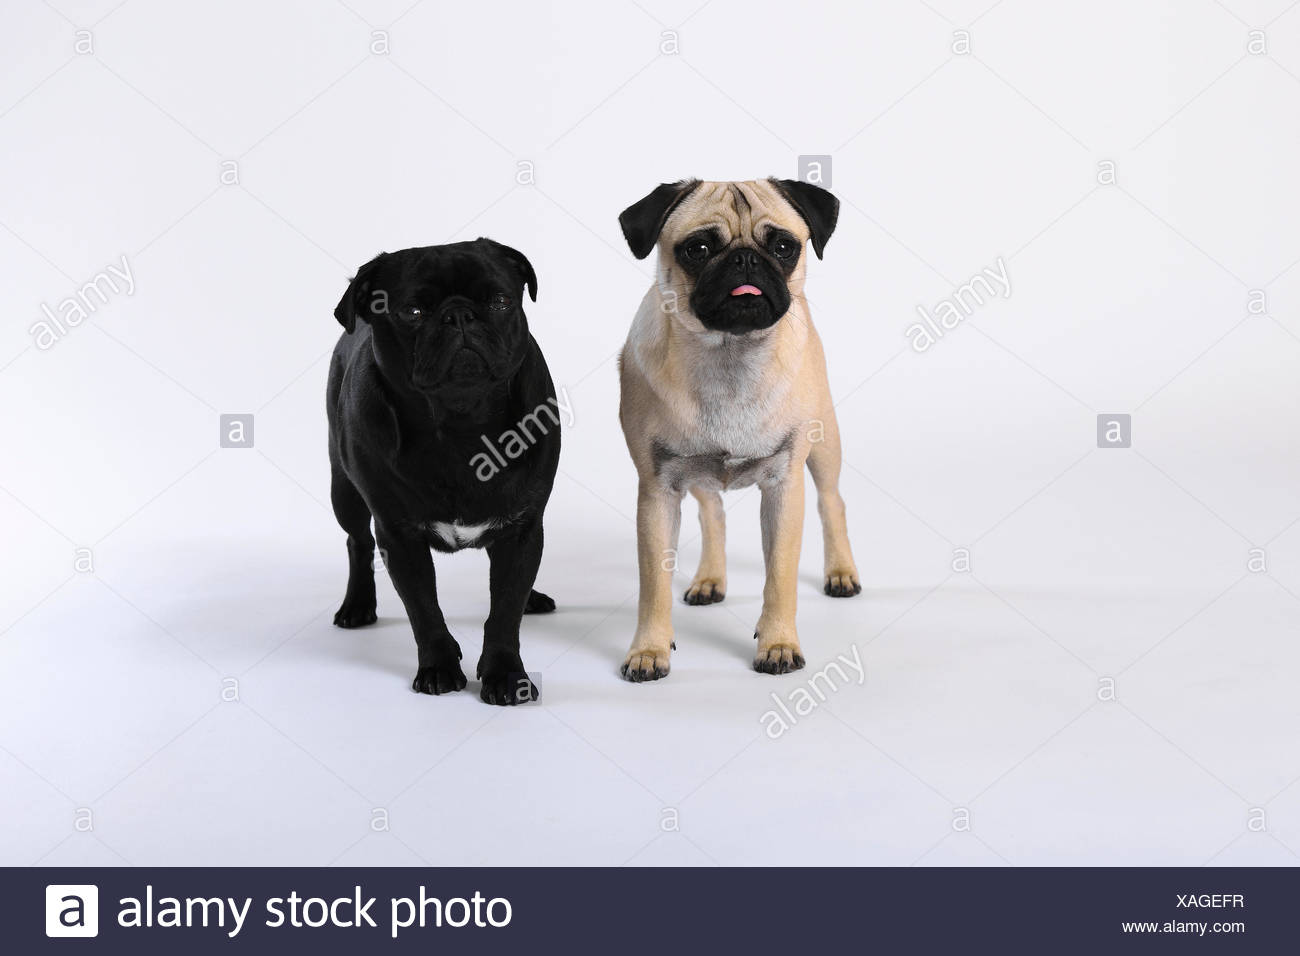 2 Isolated Domestic Animal Pet Background Dog Dogs Pugs Fatties Mops Pugs Fatties Pair Couple Portrait Couple Fo Stock Photo Alamy